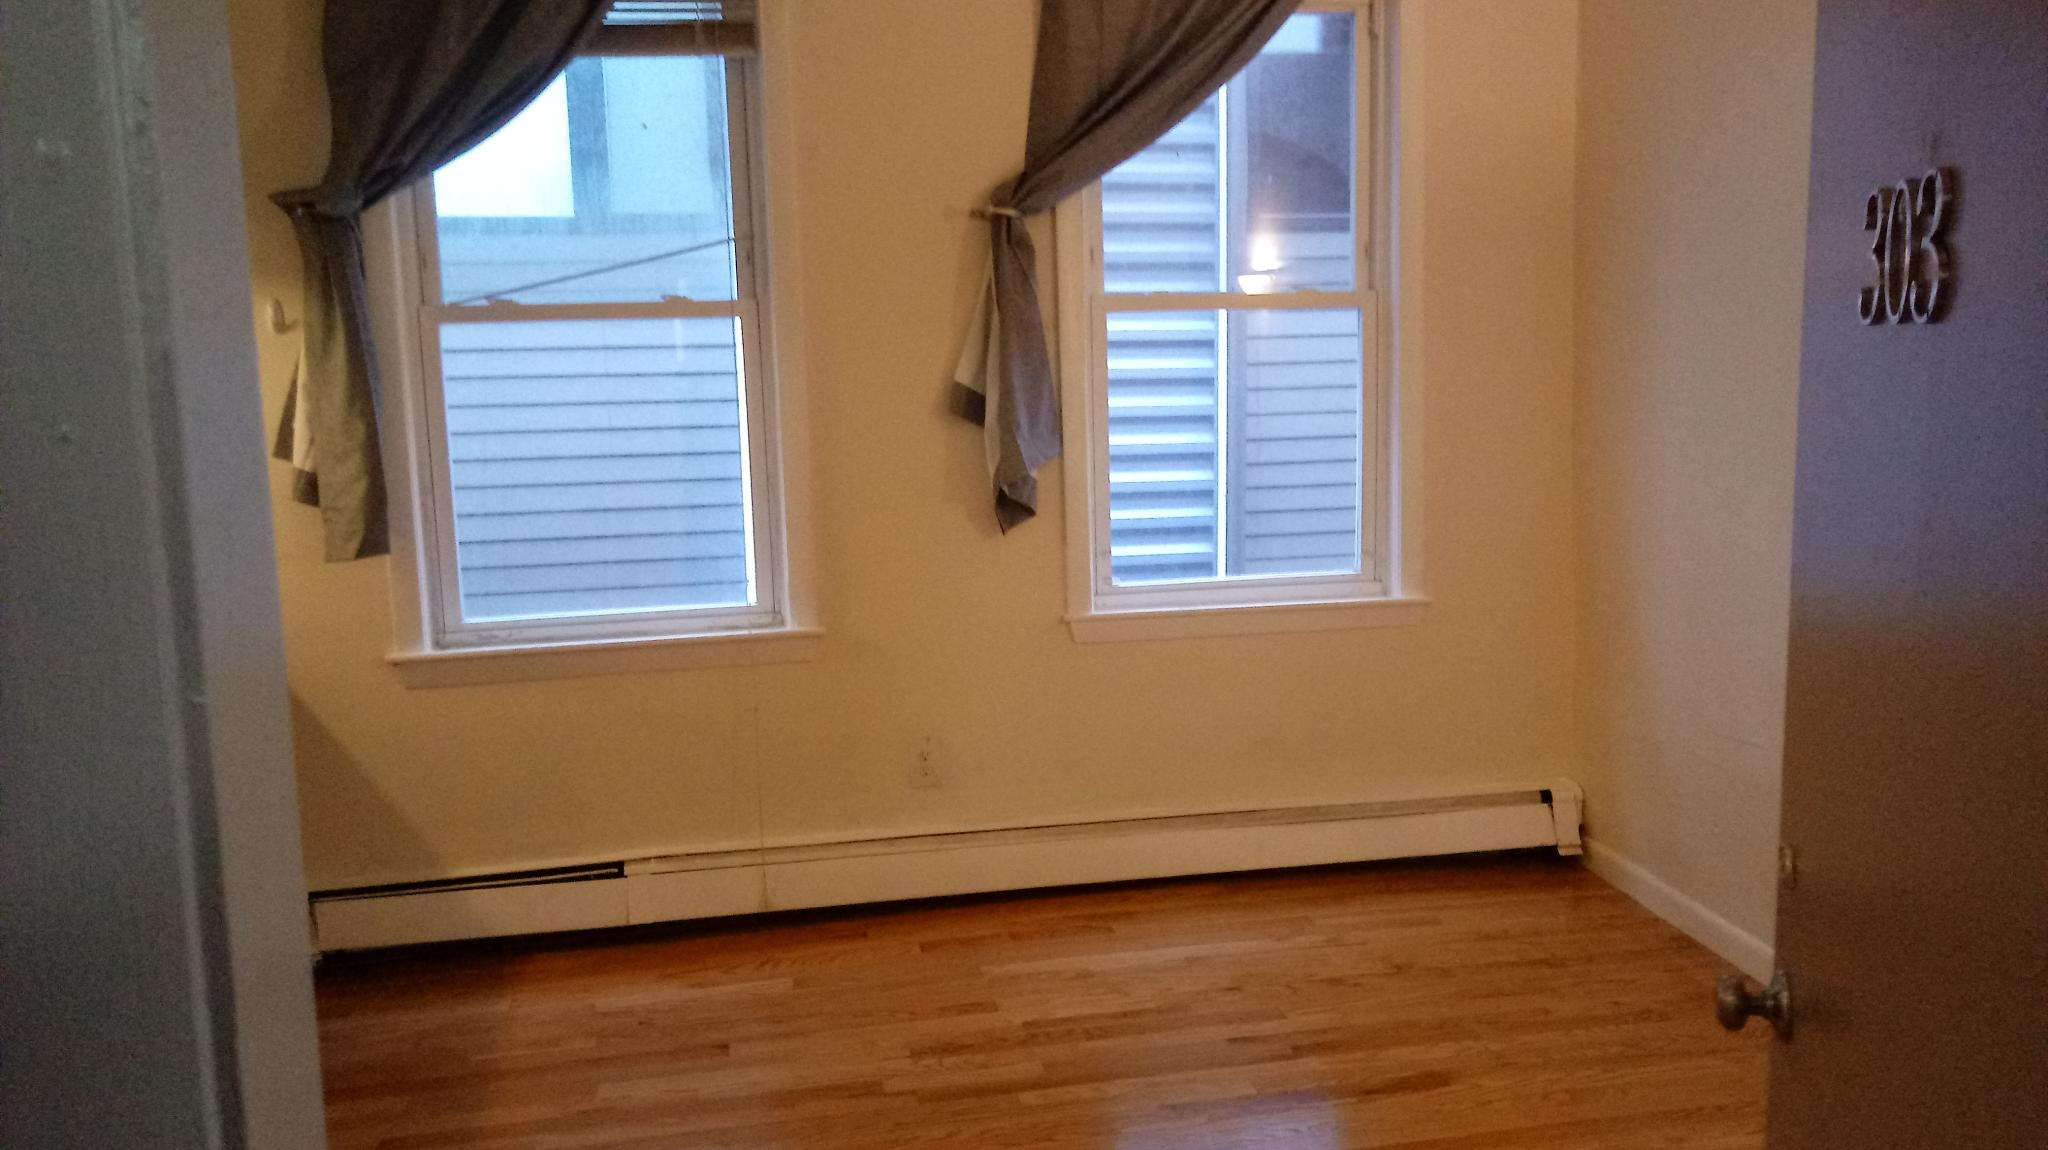 Studio, 1 Bath apartment in Boston, Jamaica Plain for $1,150